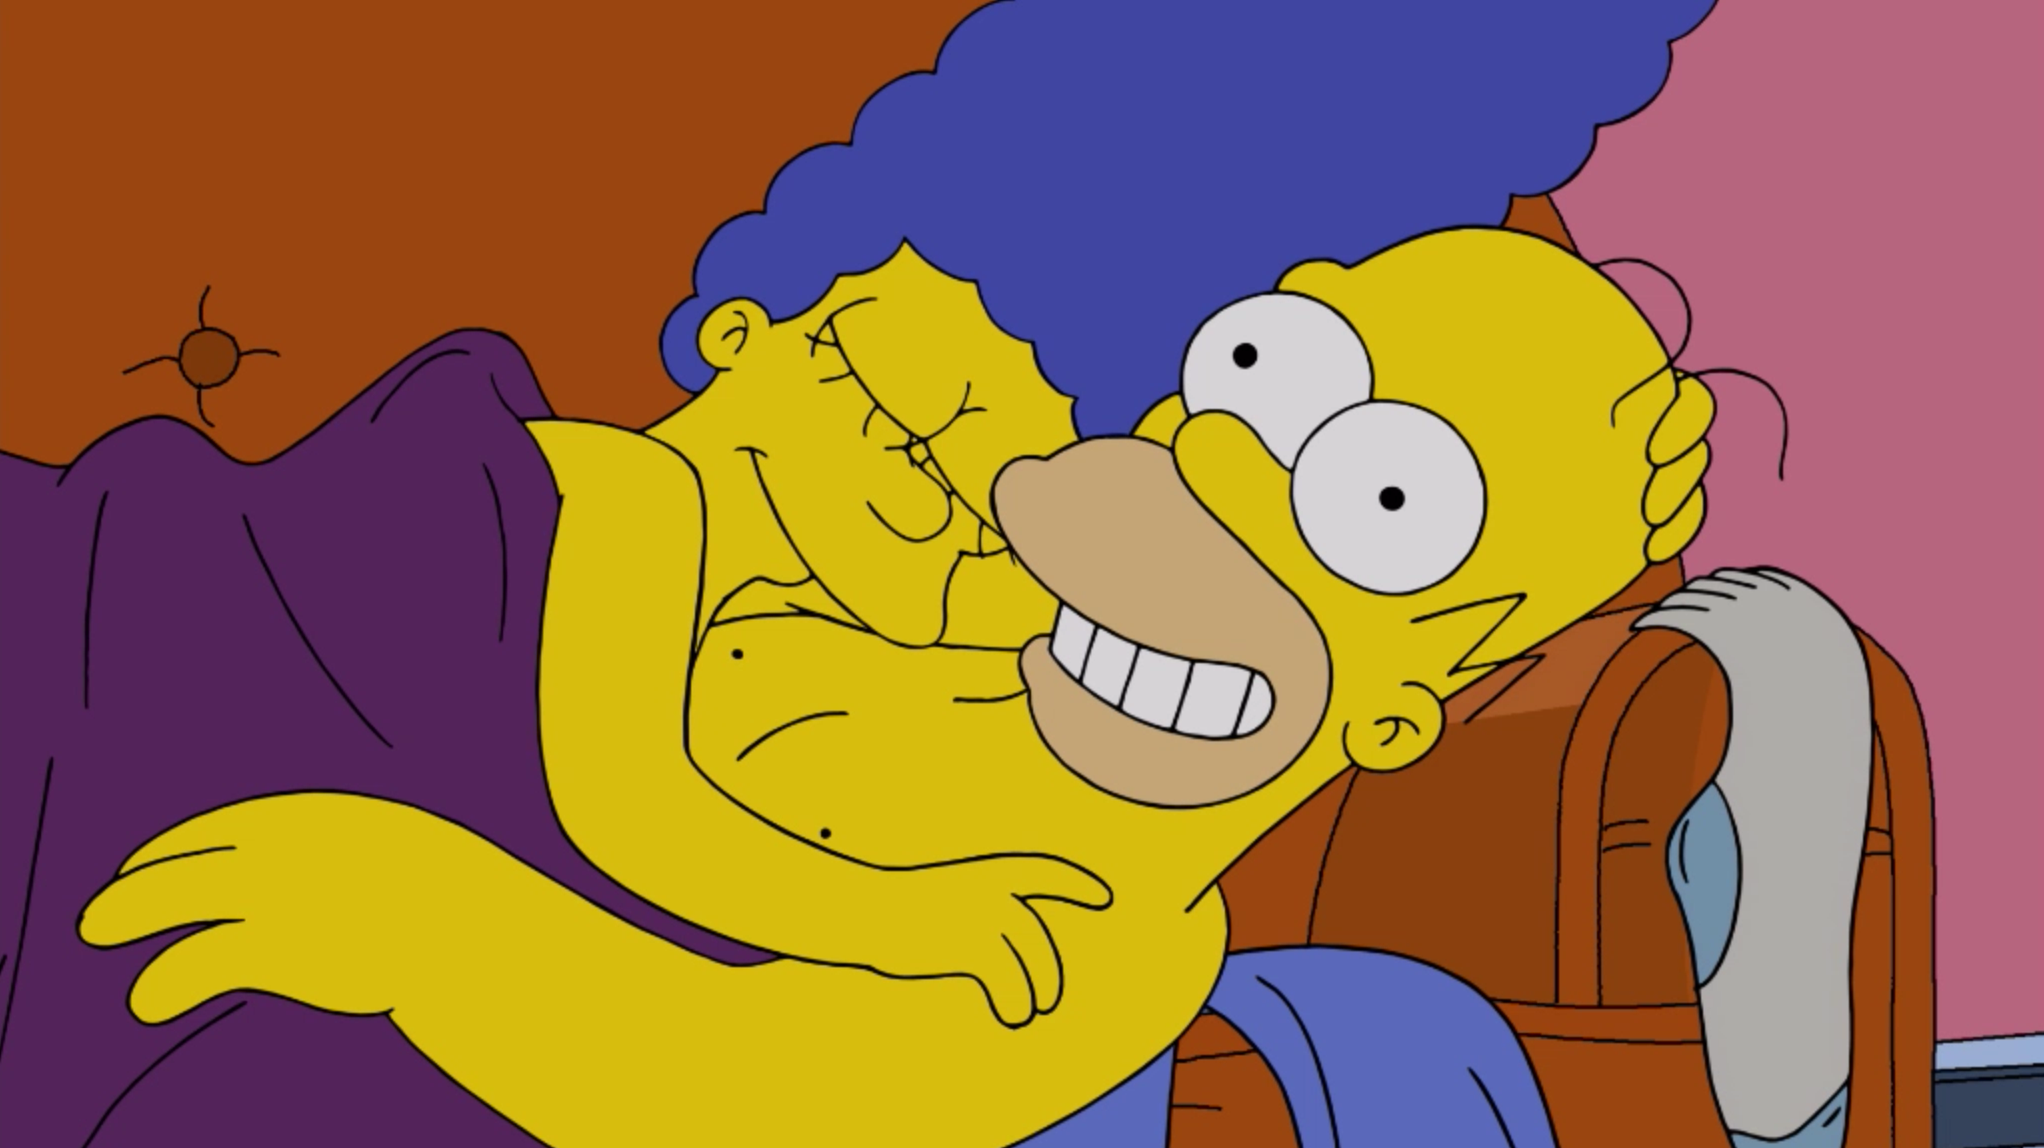 Why The Fake Seymour Skinner Episode Made Me Give Up On The Simpsons